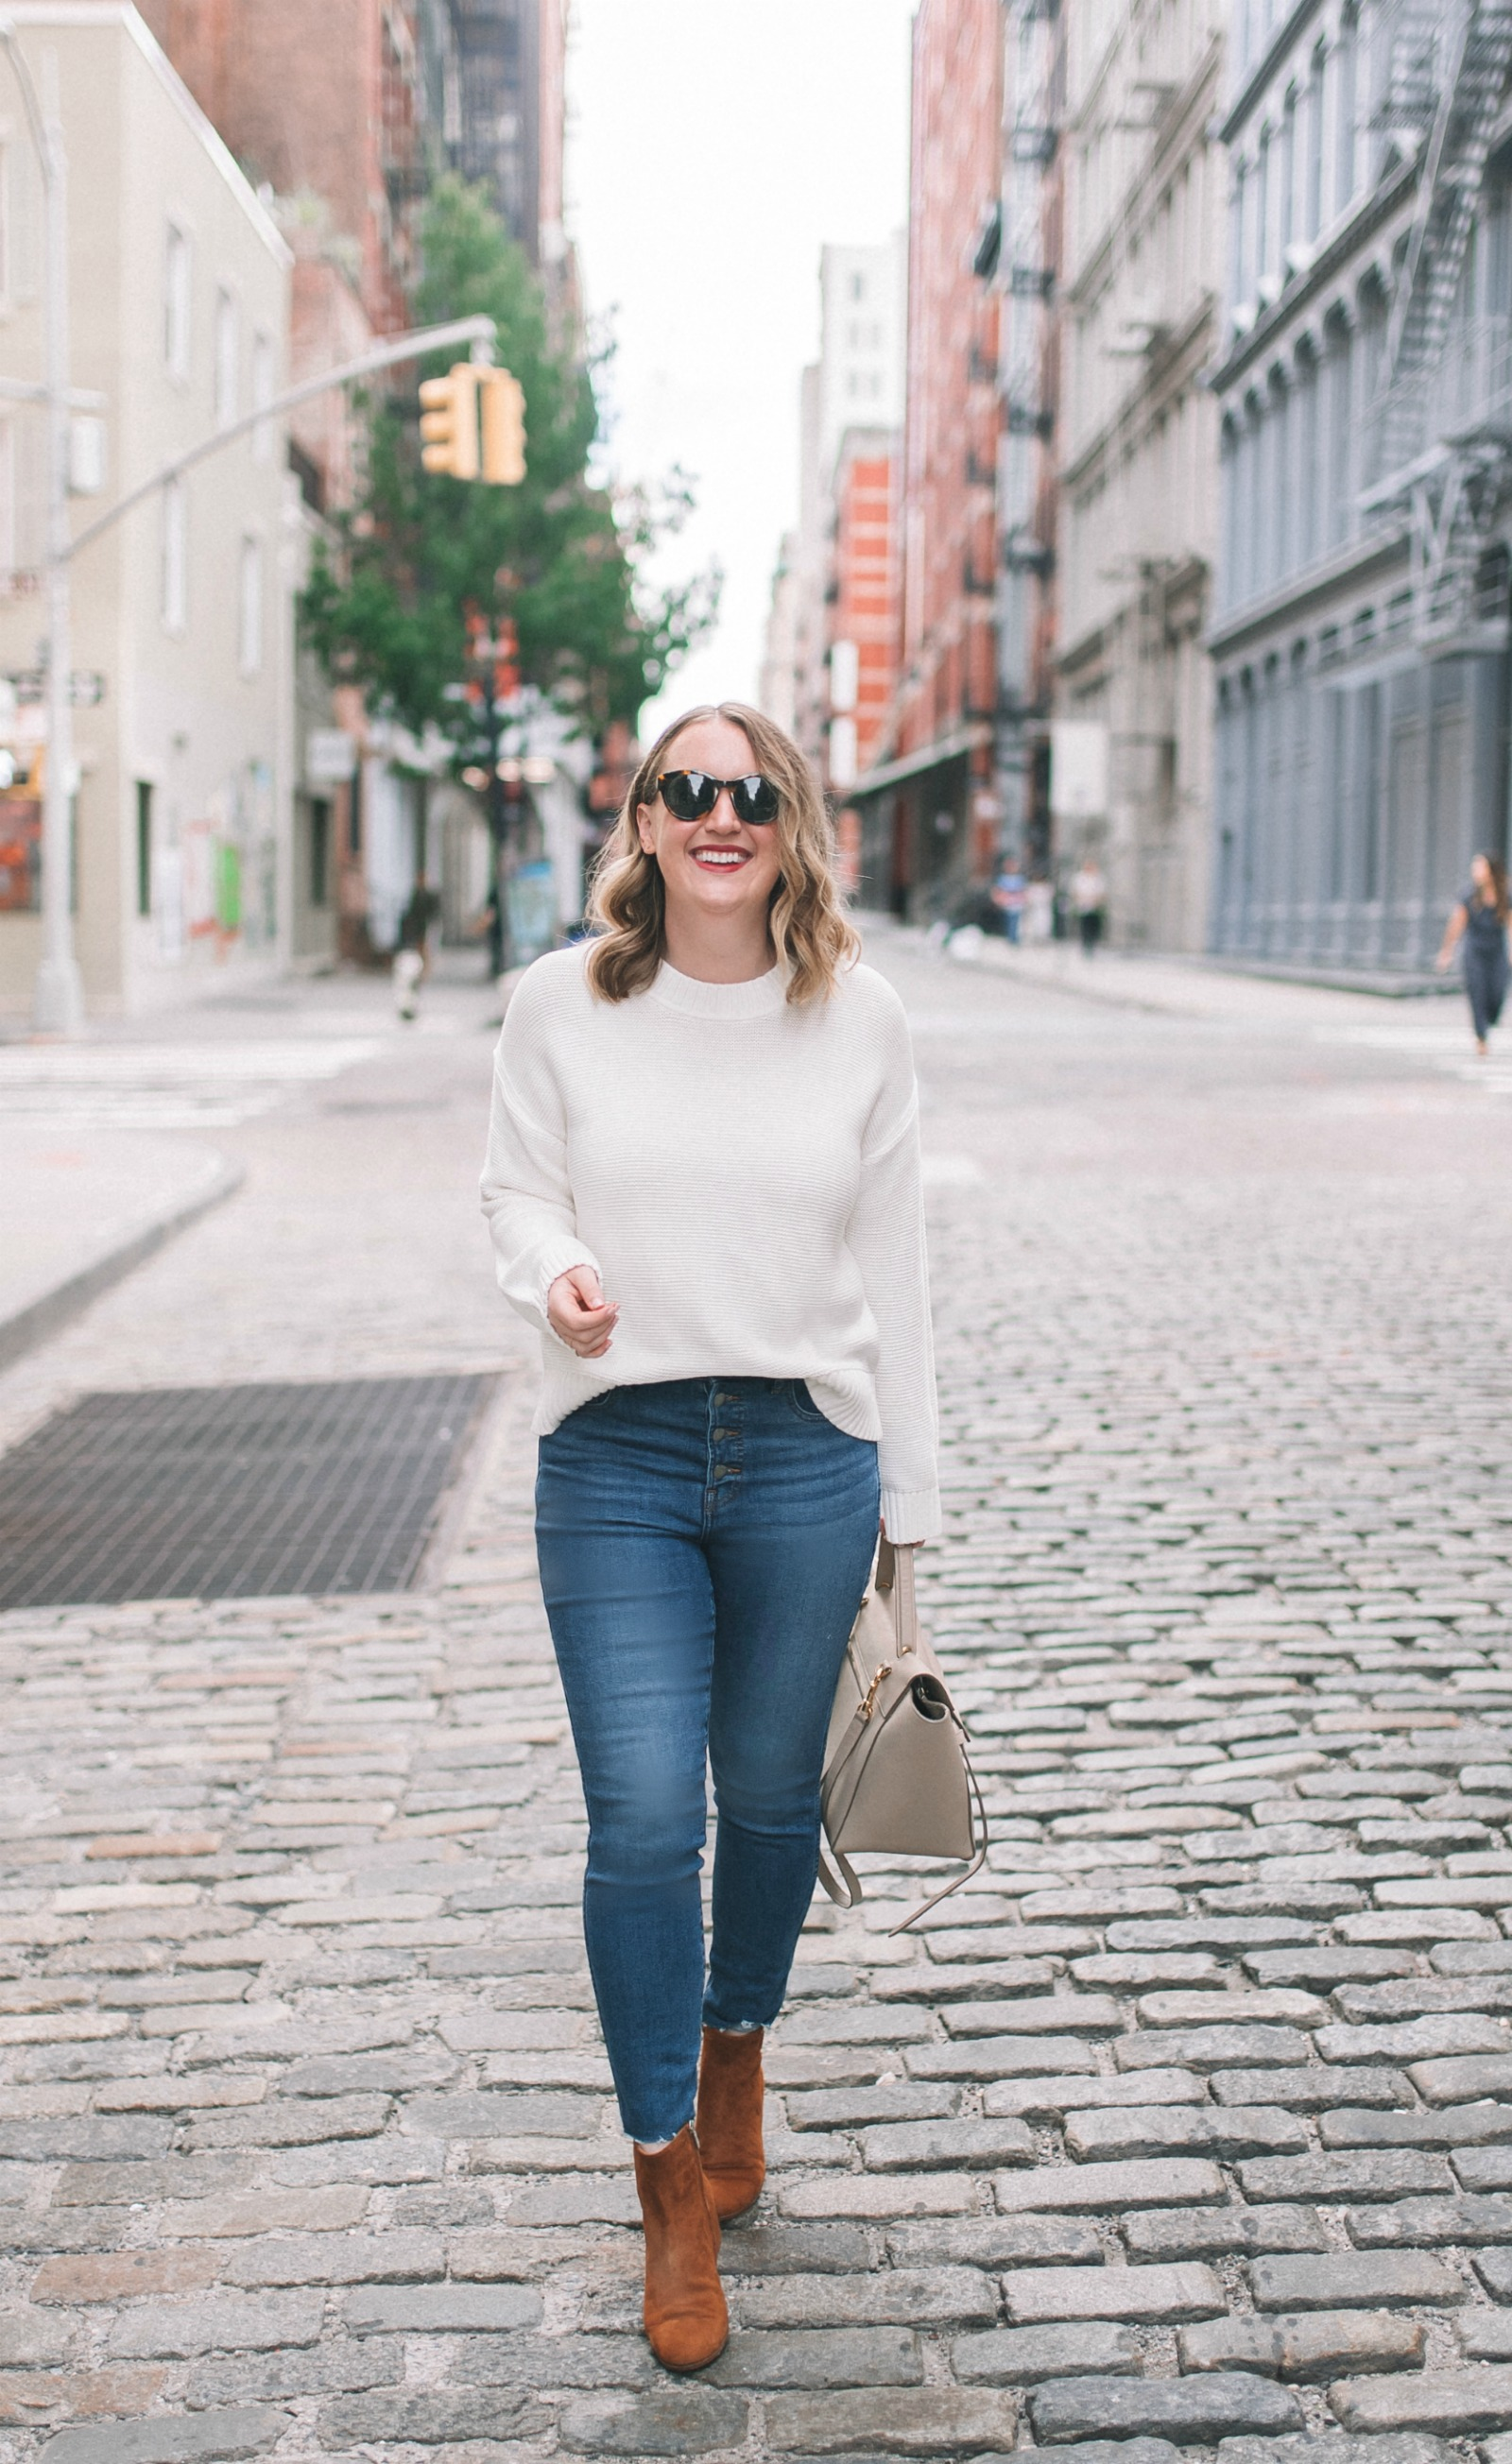 Casual Fall Outfit Ideas With Jeans